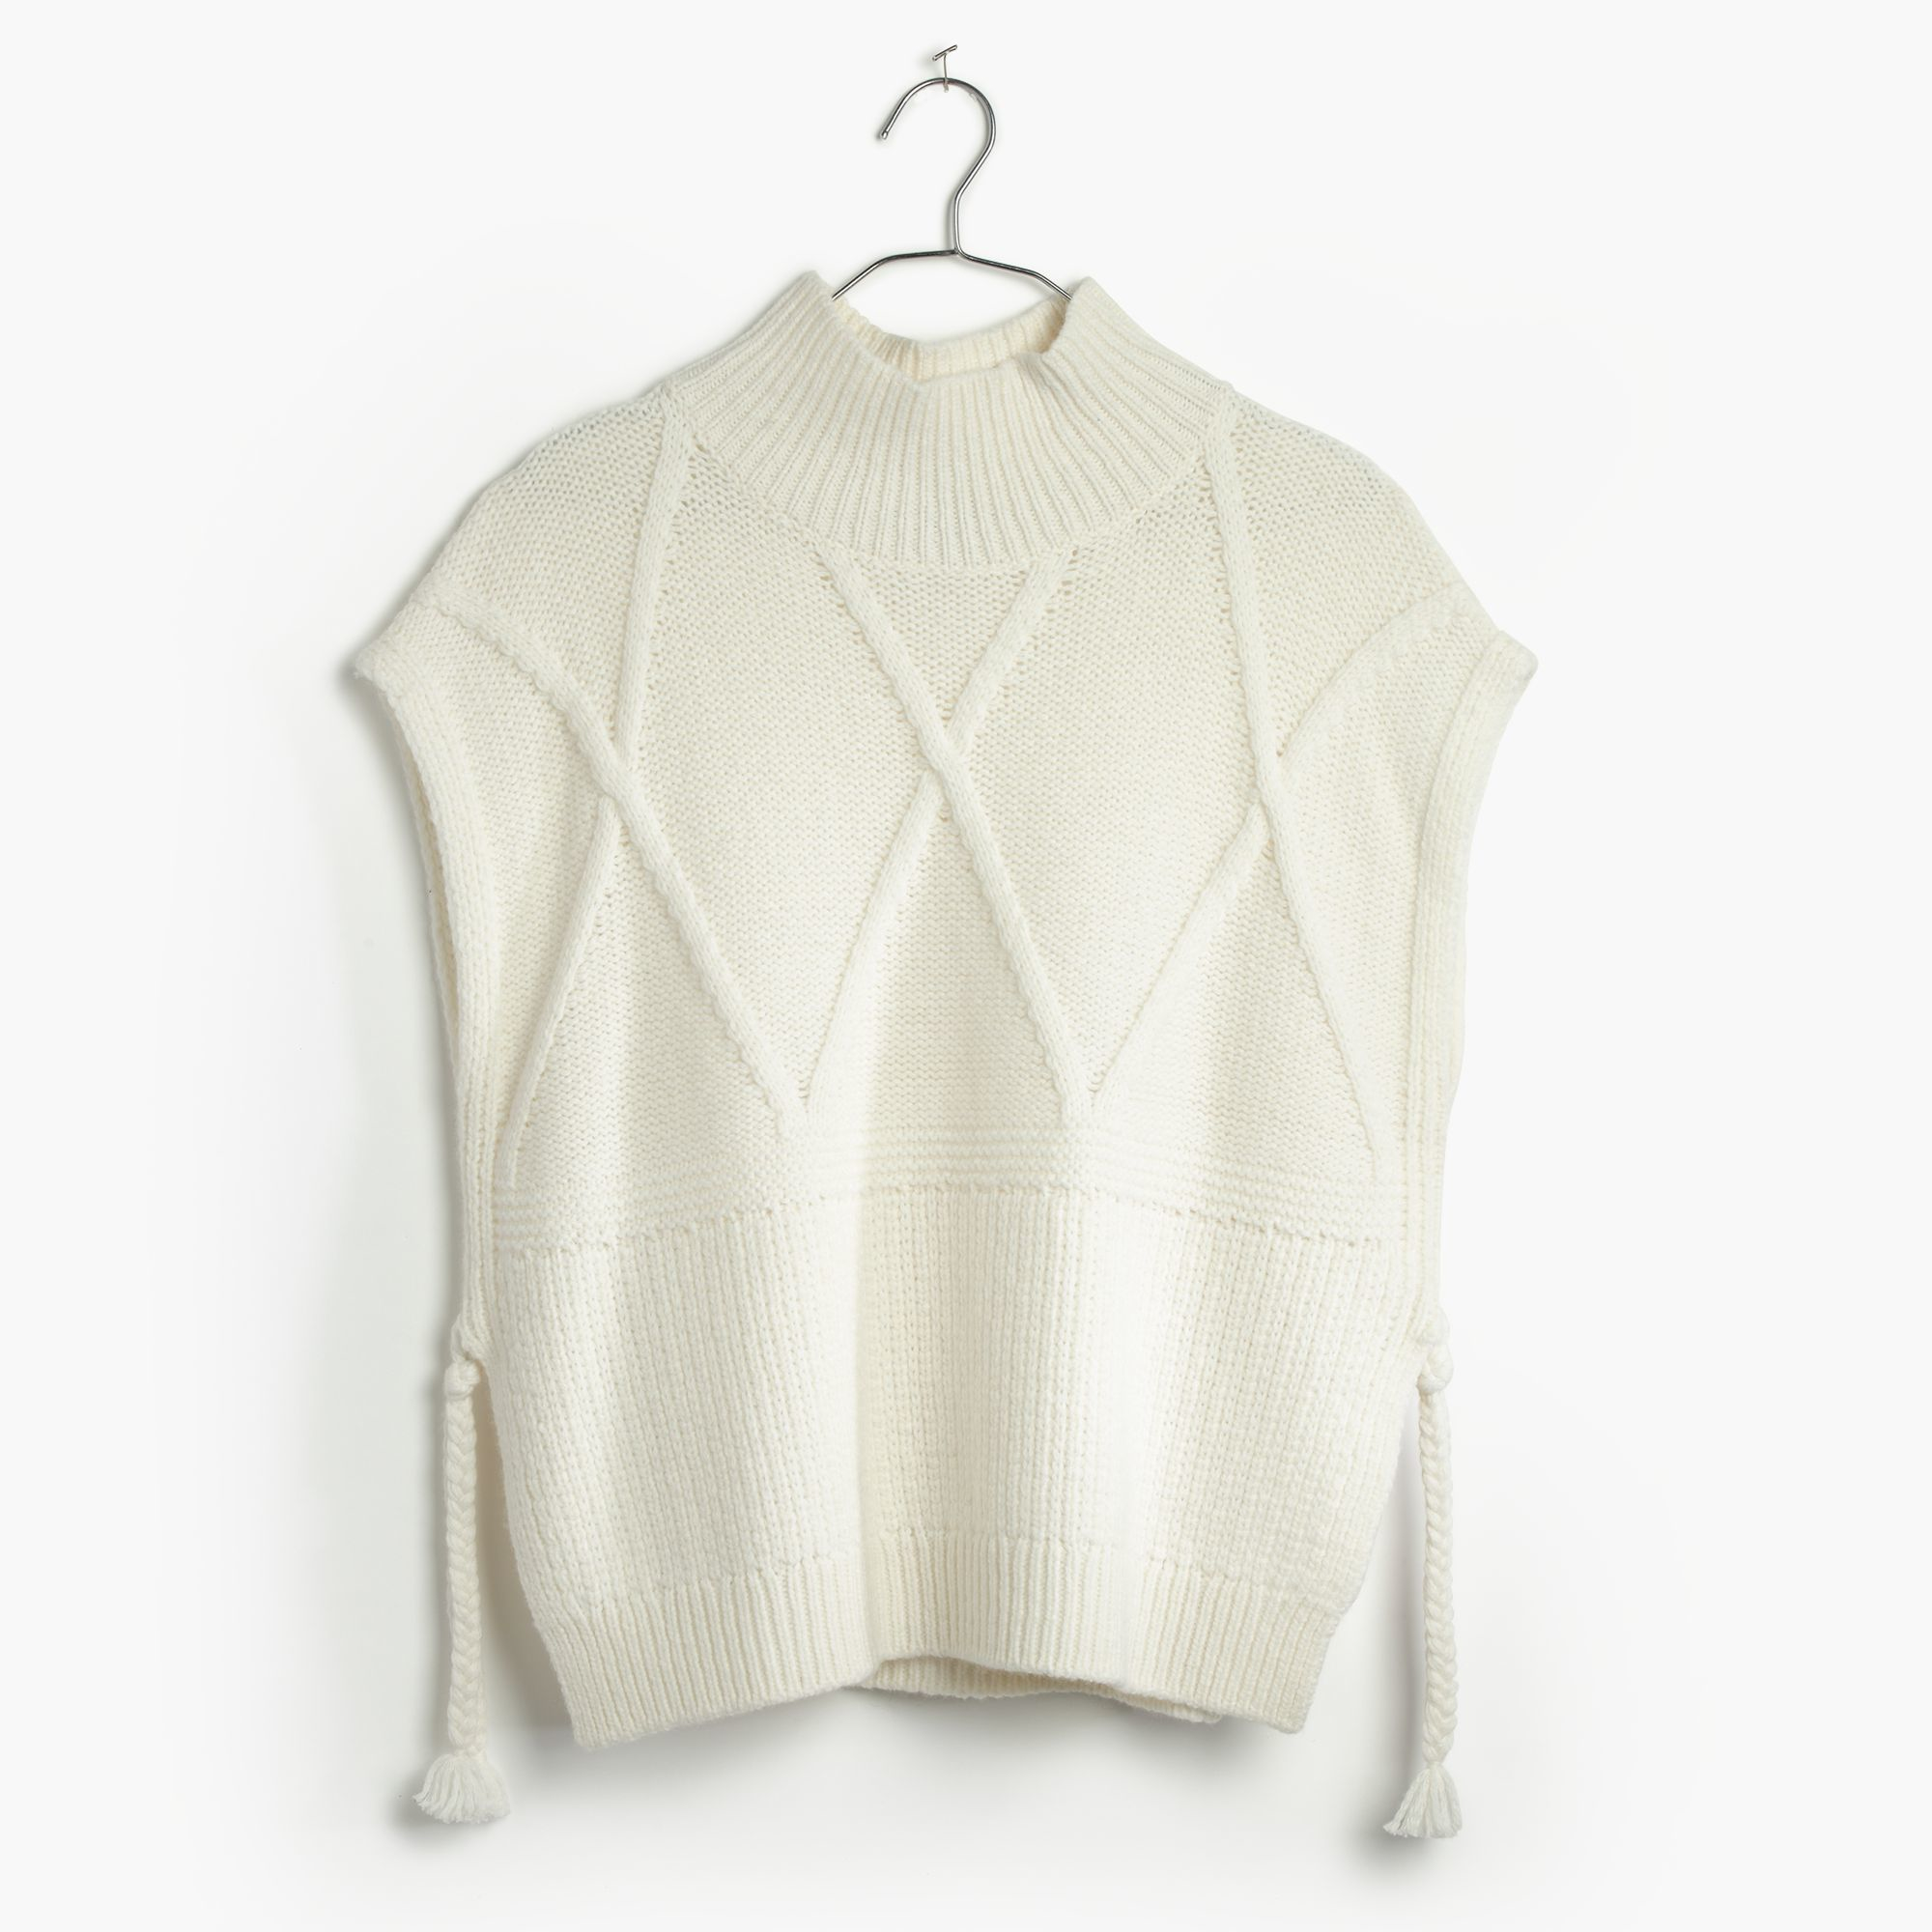 Madewell Cableknit Side-tie Sweater-vest in Natural | Lyst